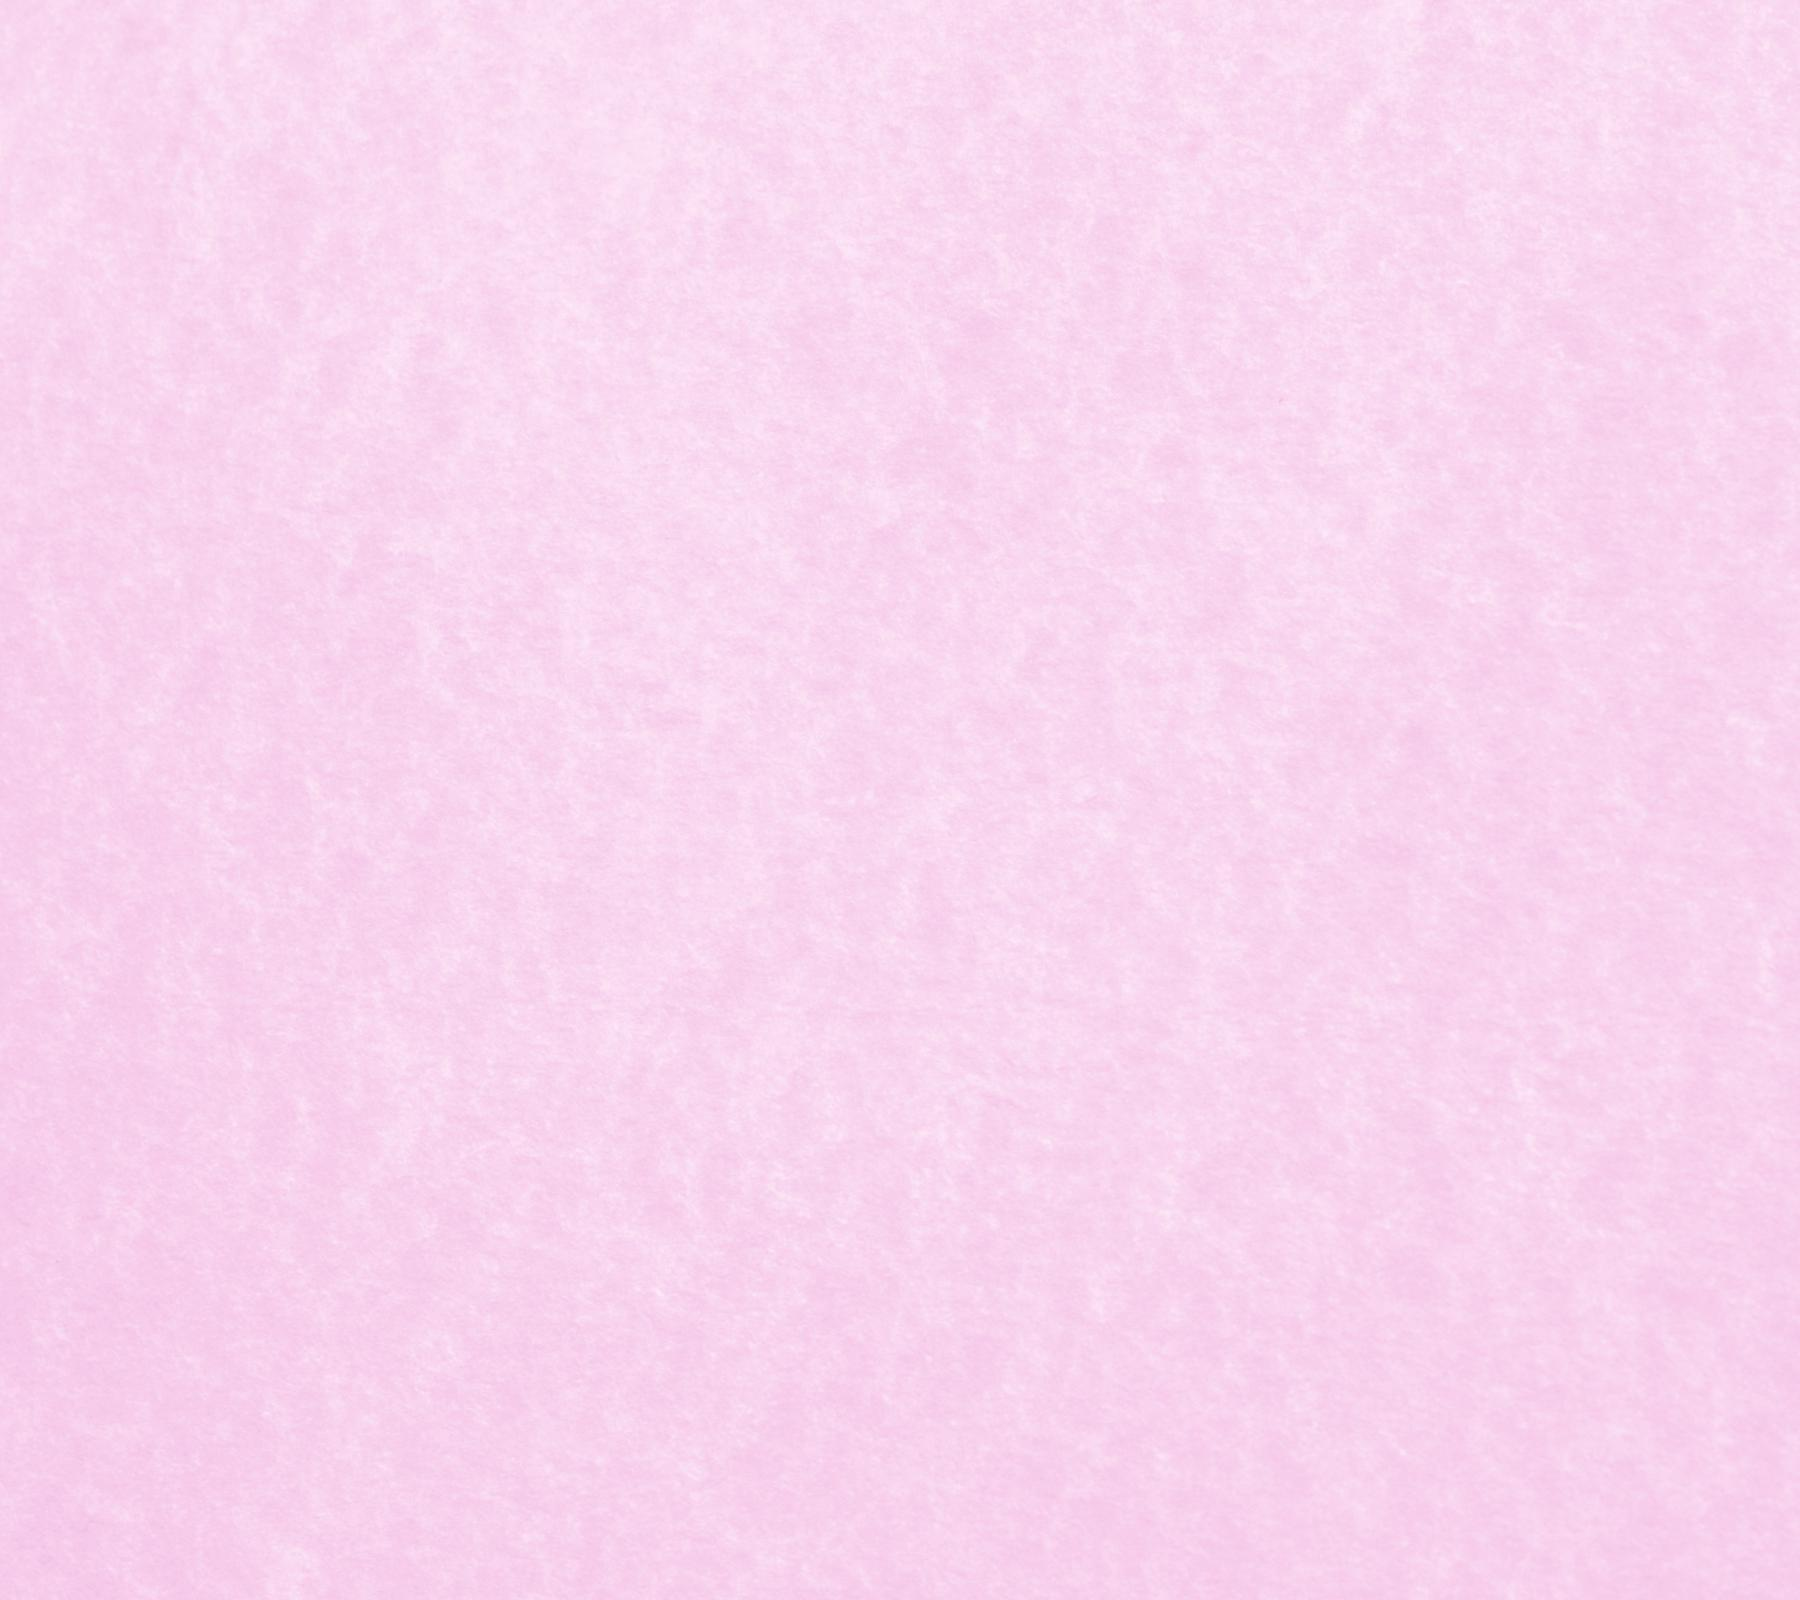 Light Pink Background Tumblr Hd Pictures 4 HD Wallpapers | aduphoto.